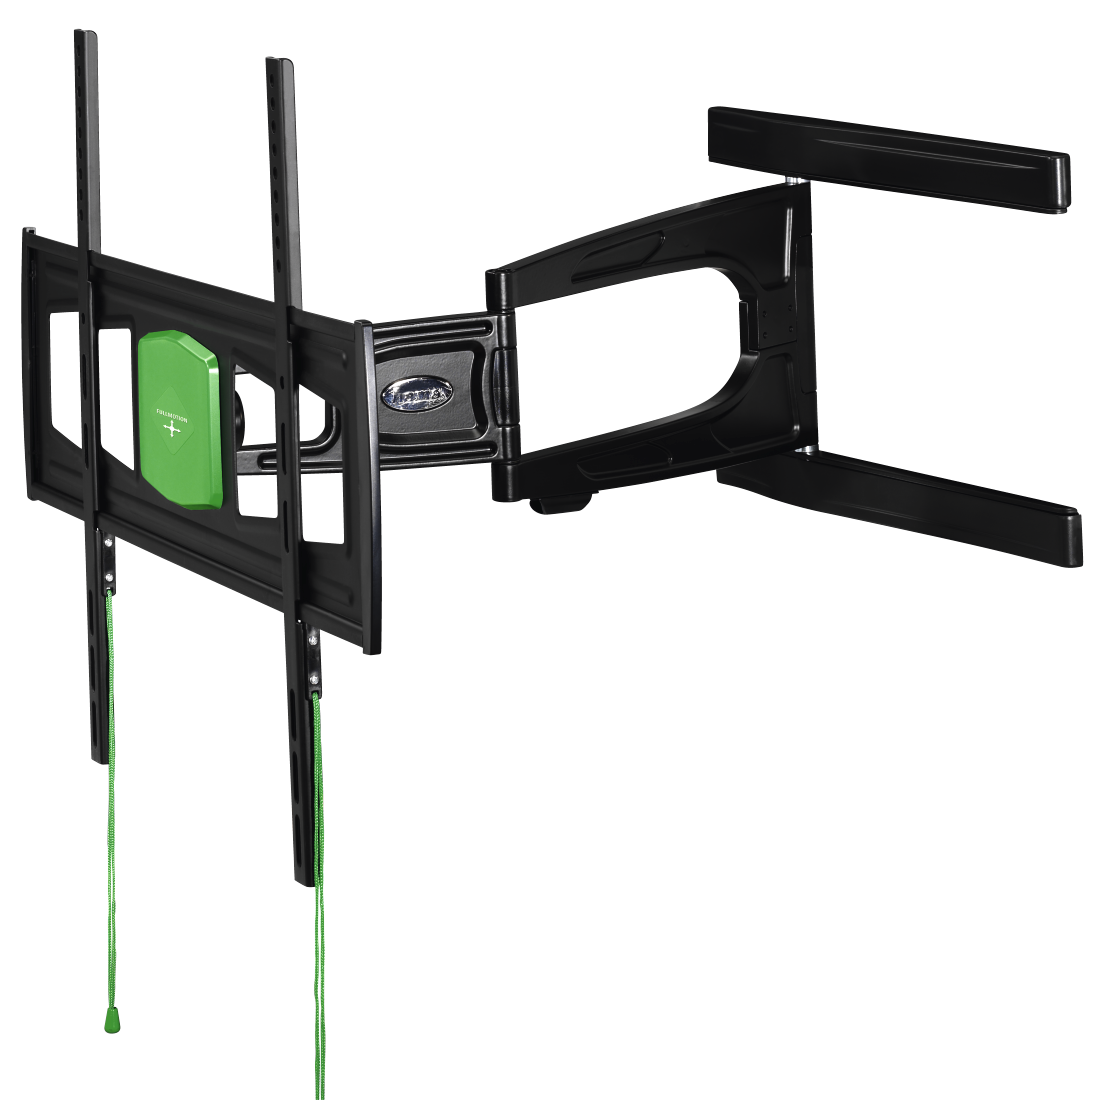 abx2 High-Res Image 2 - Hama, Ultraslim FULLMOTION TV Wall Bracket, 3 stars, 165 cm (65), 2 arms, bk